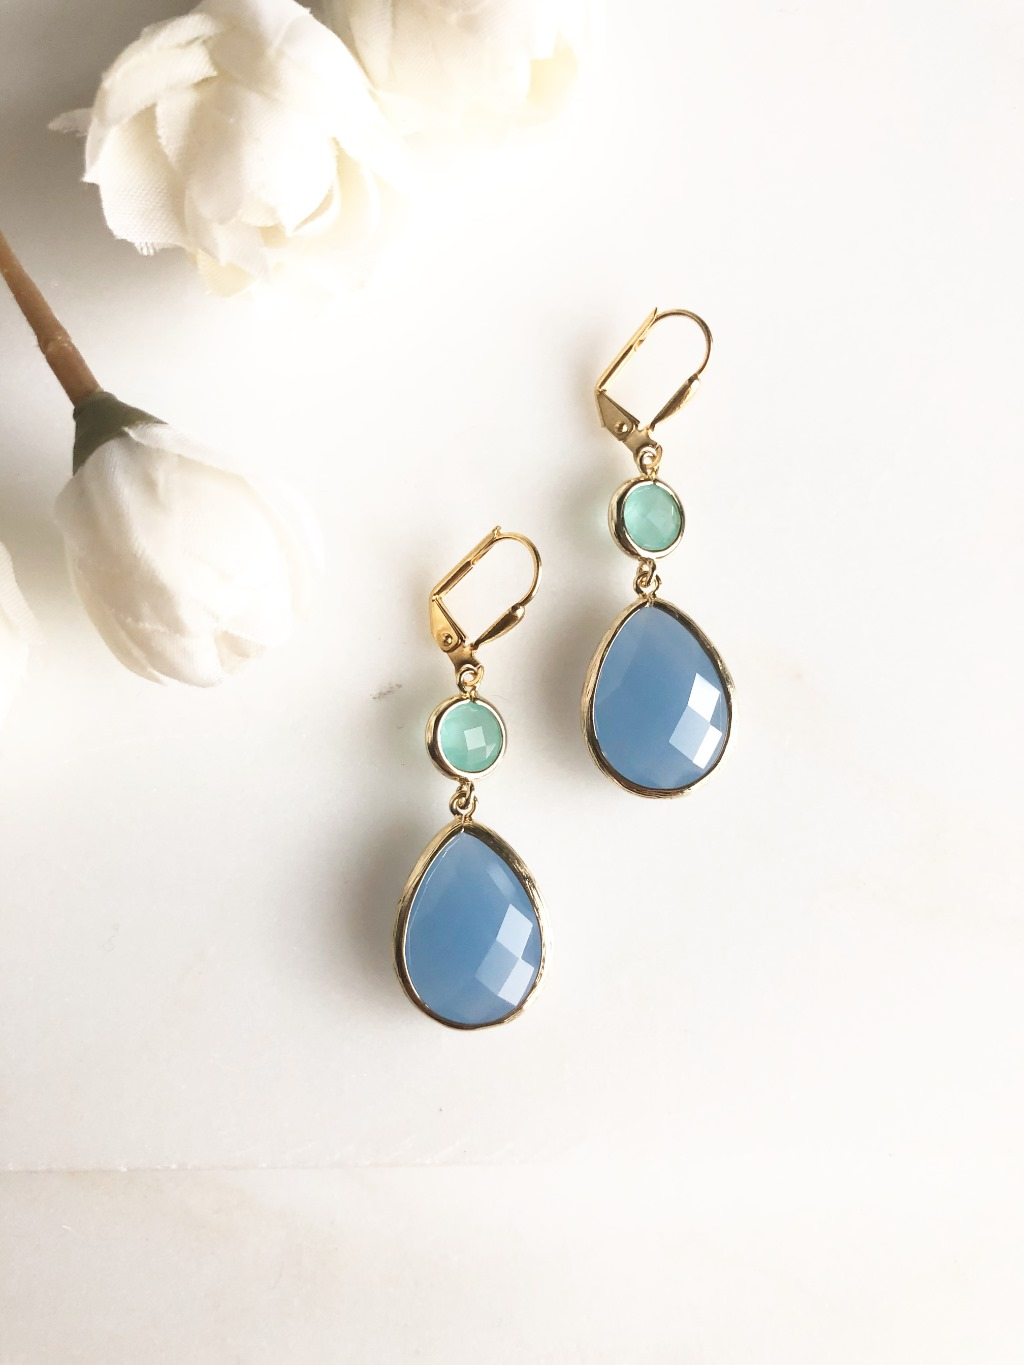 eriwinkle and Aqua Glass Bridal Earrings. A Great Bridesmaid Gift!